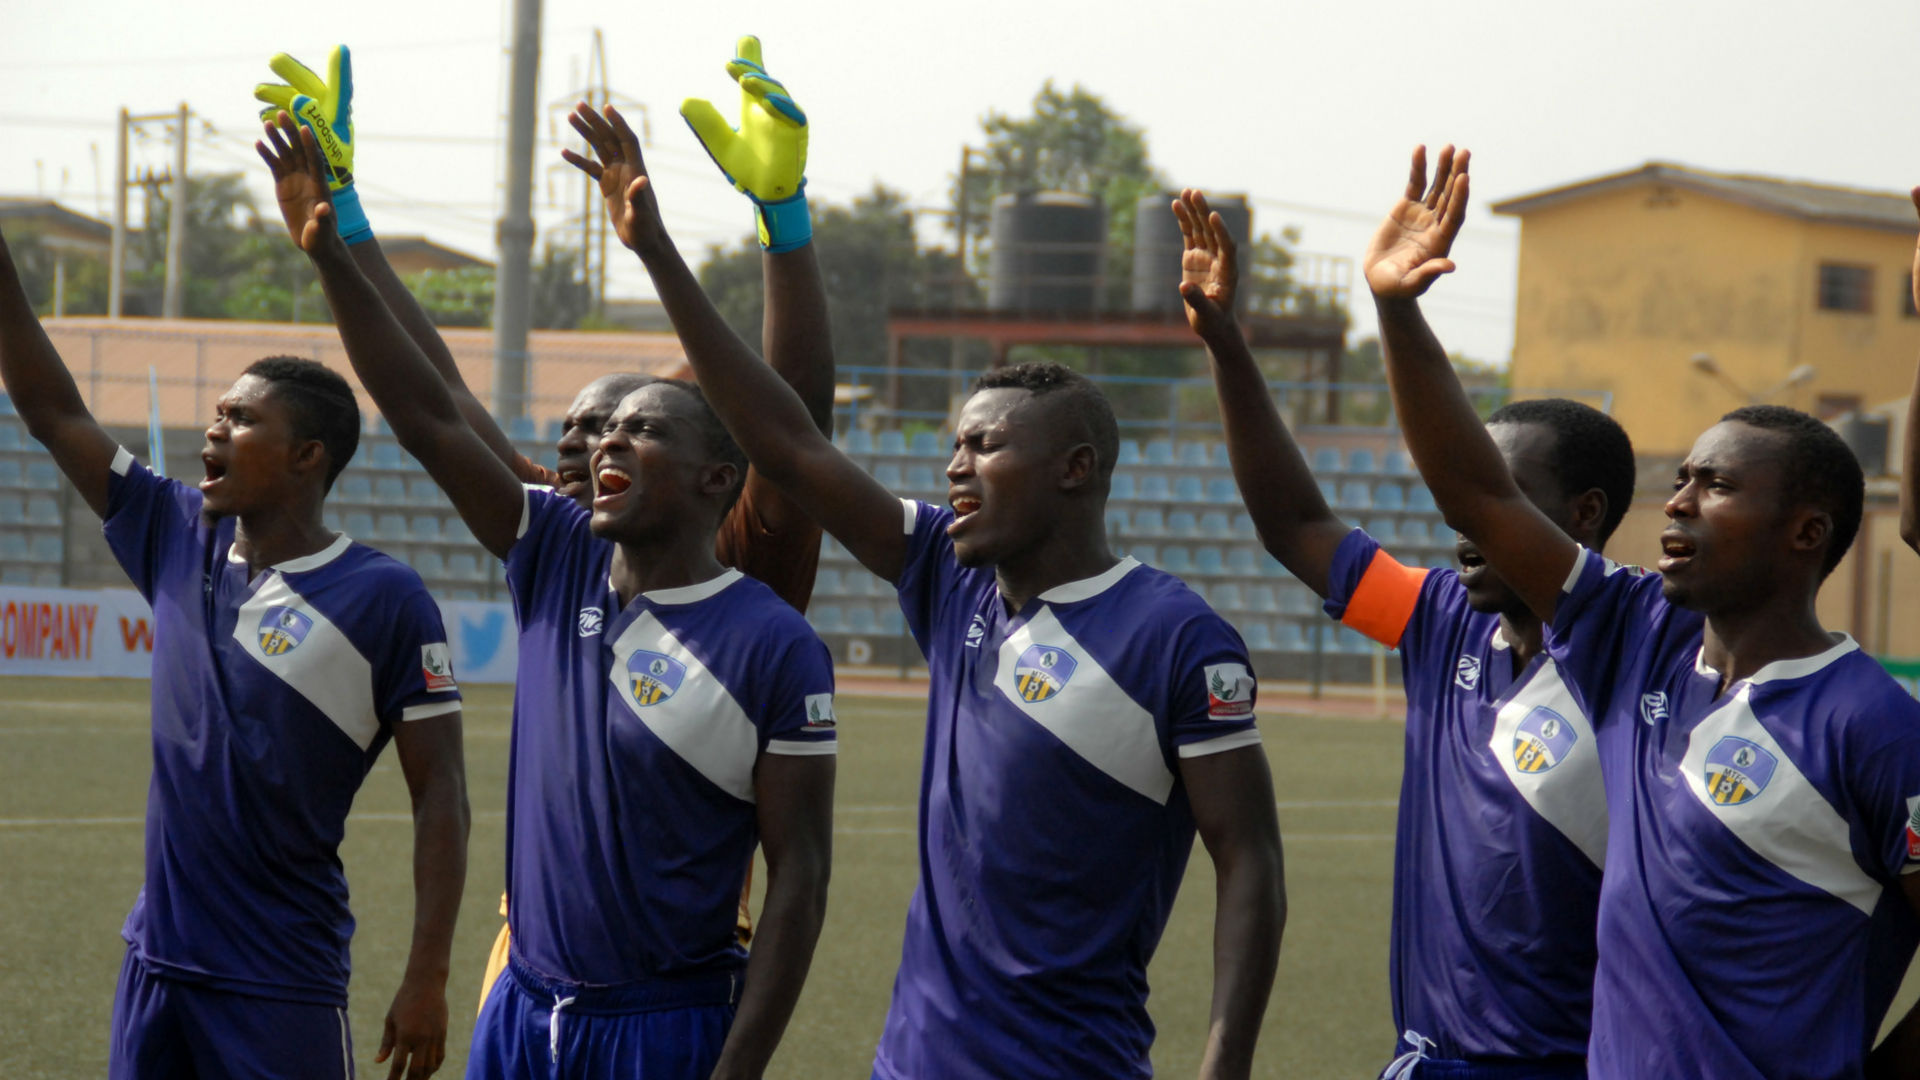 We Won't Lose in Agege! MFM FC Boss Boasts as FC Ifeanyi Ubah Comes Calling - Latest football news in Nigeria - FootballliveNG